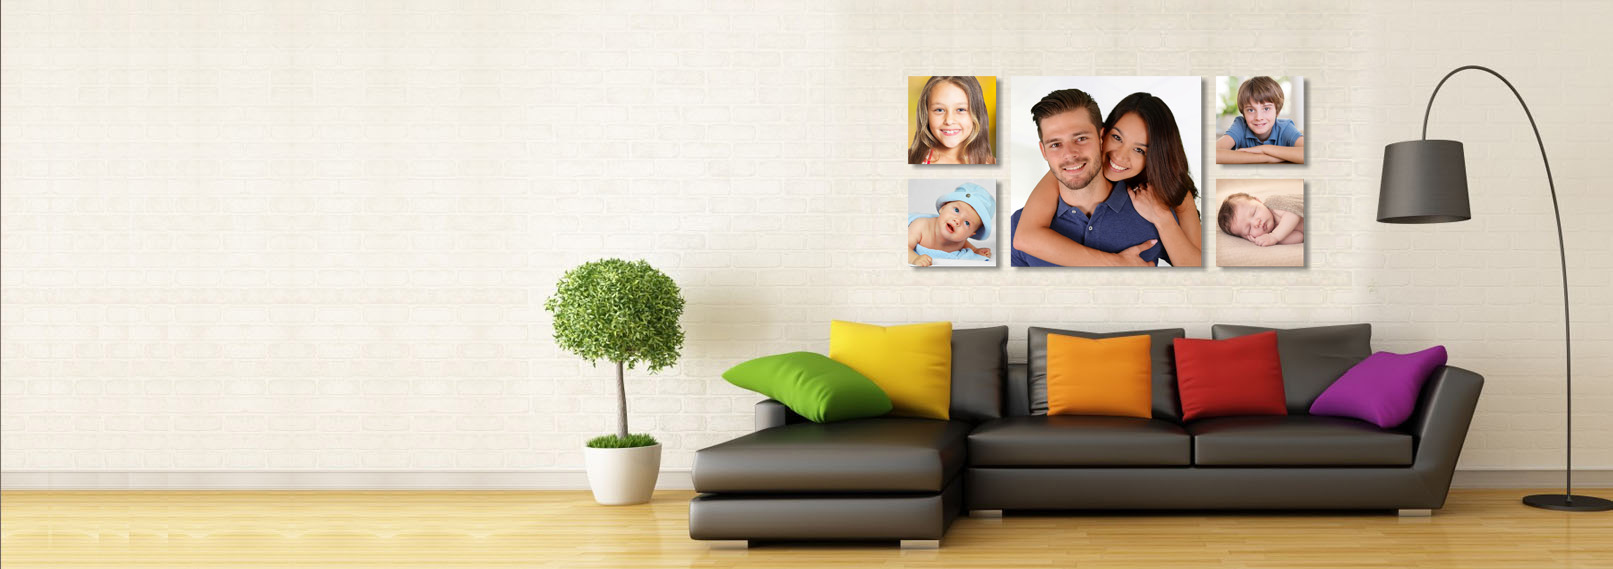 Canvas prints by Canvas Printers Online